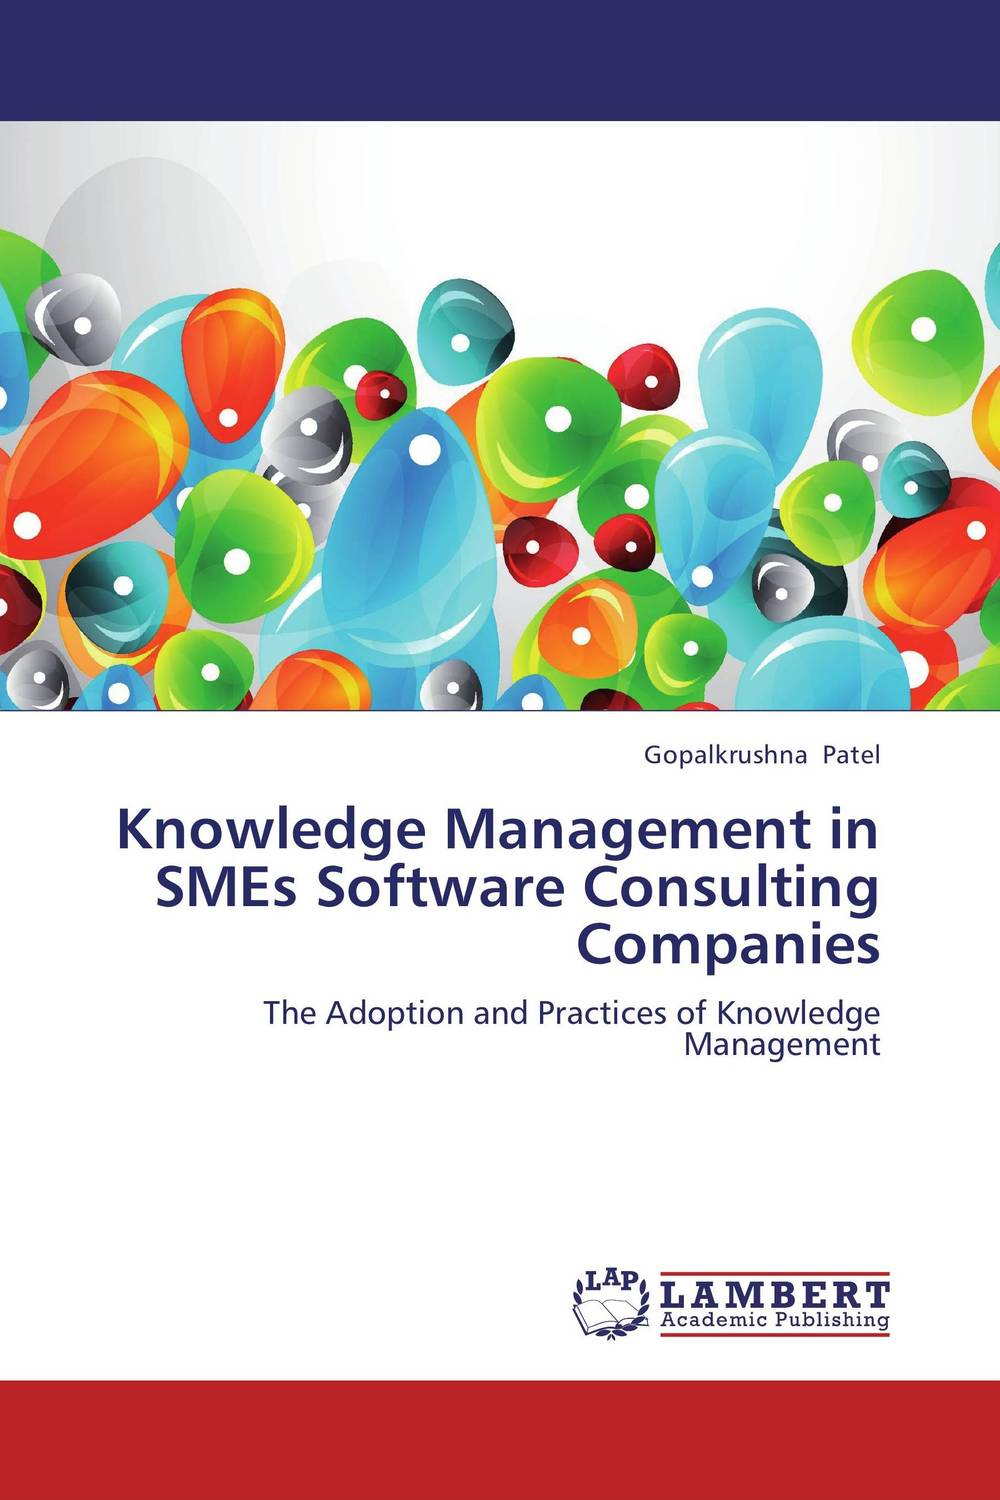 Knowledge Management in SMEs Software Consulting Companies knowledge management practices